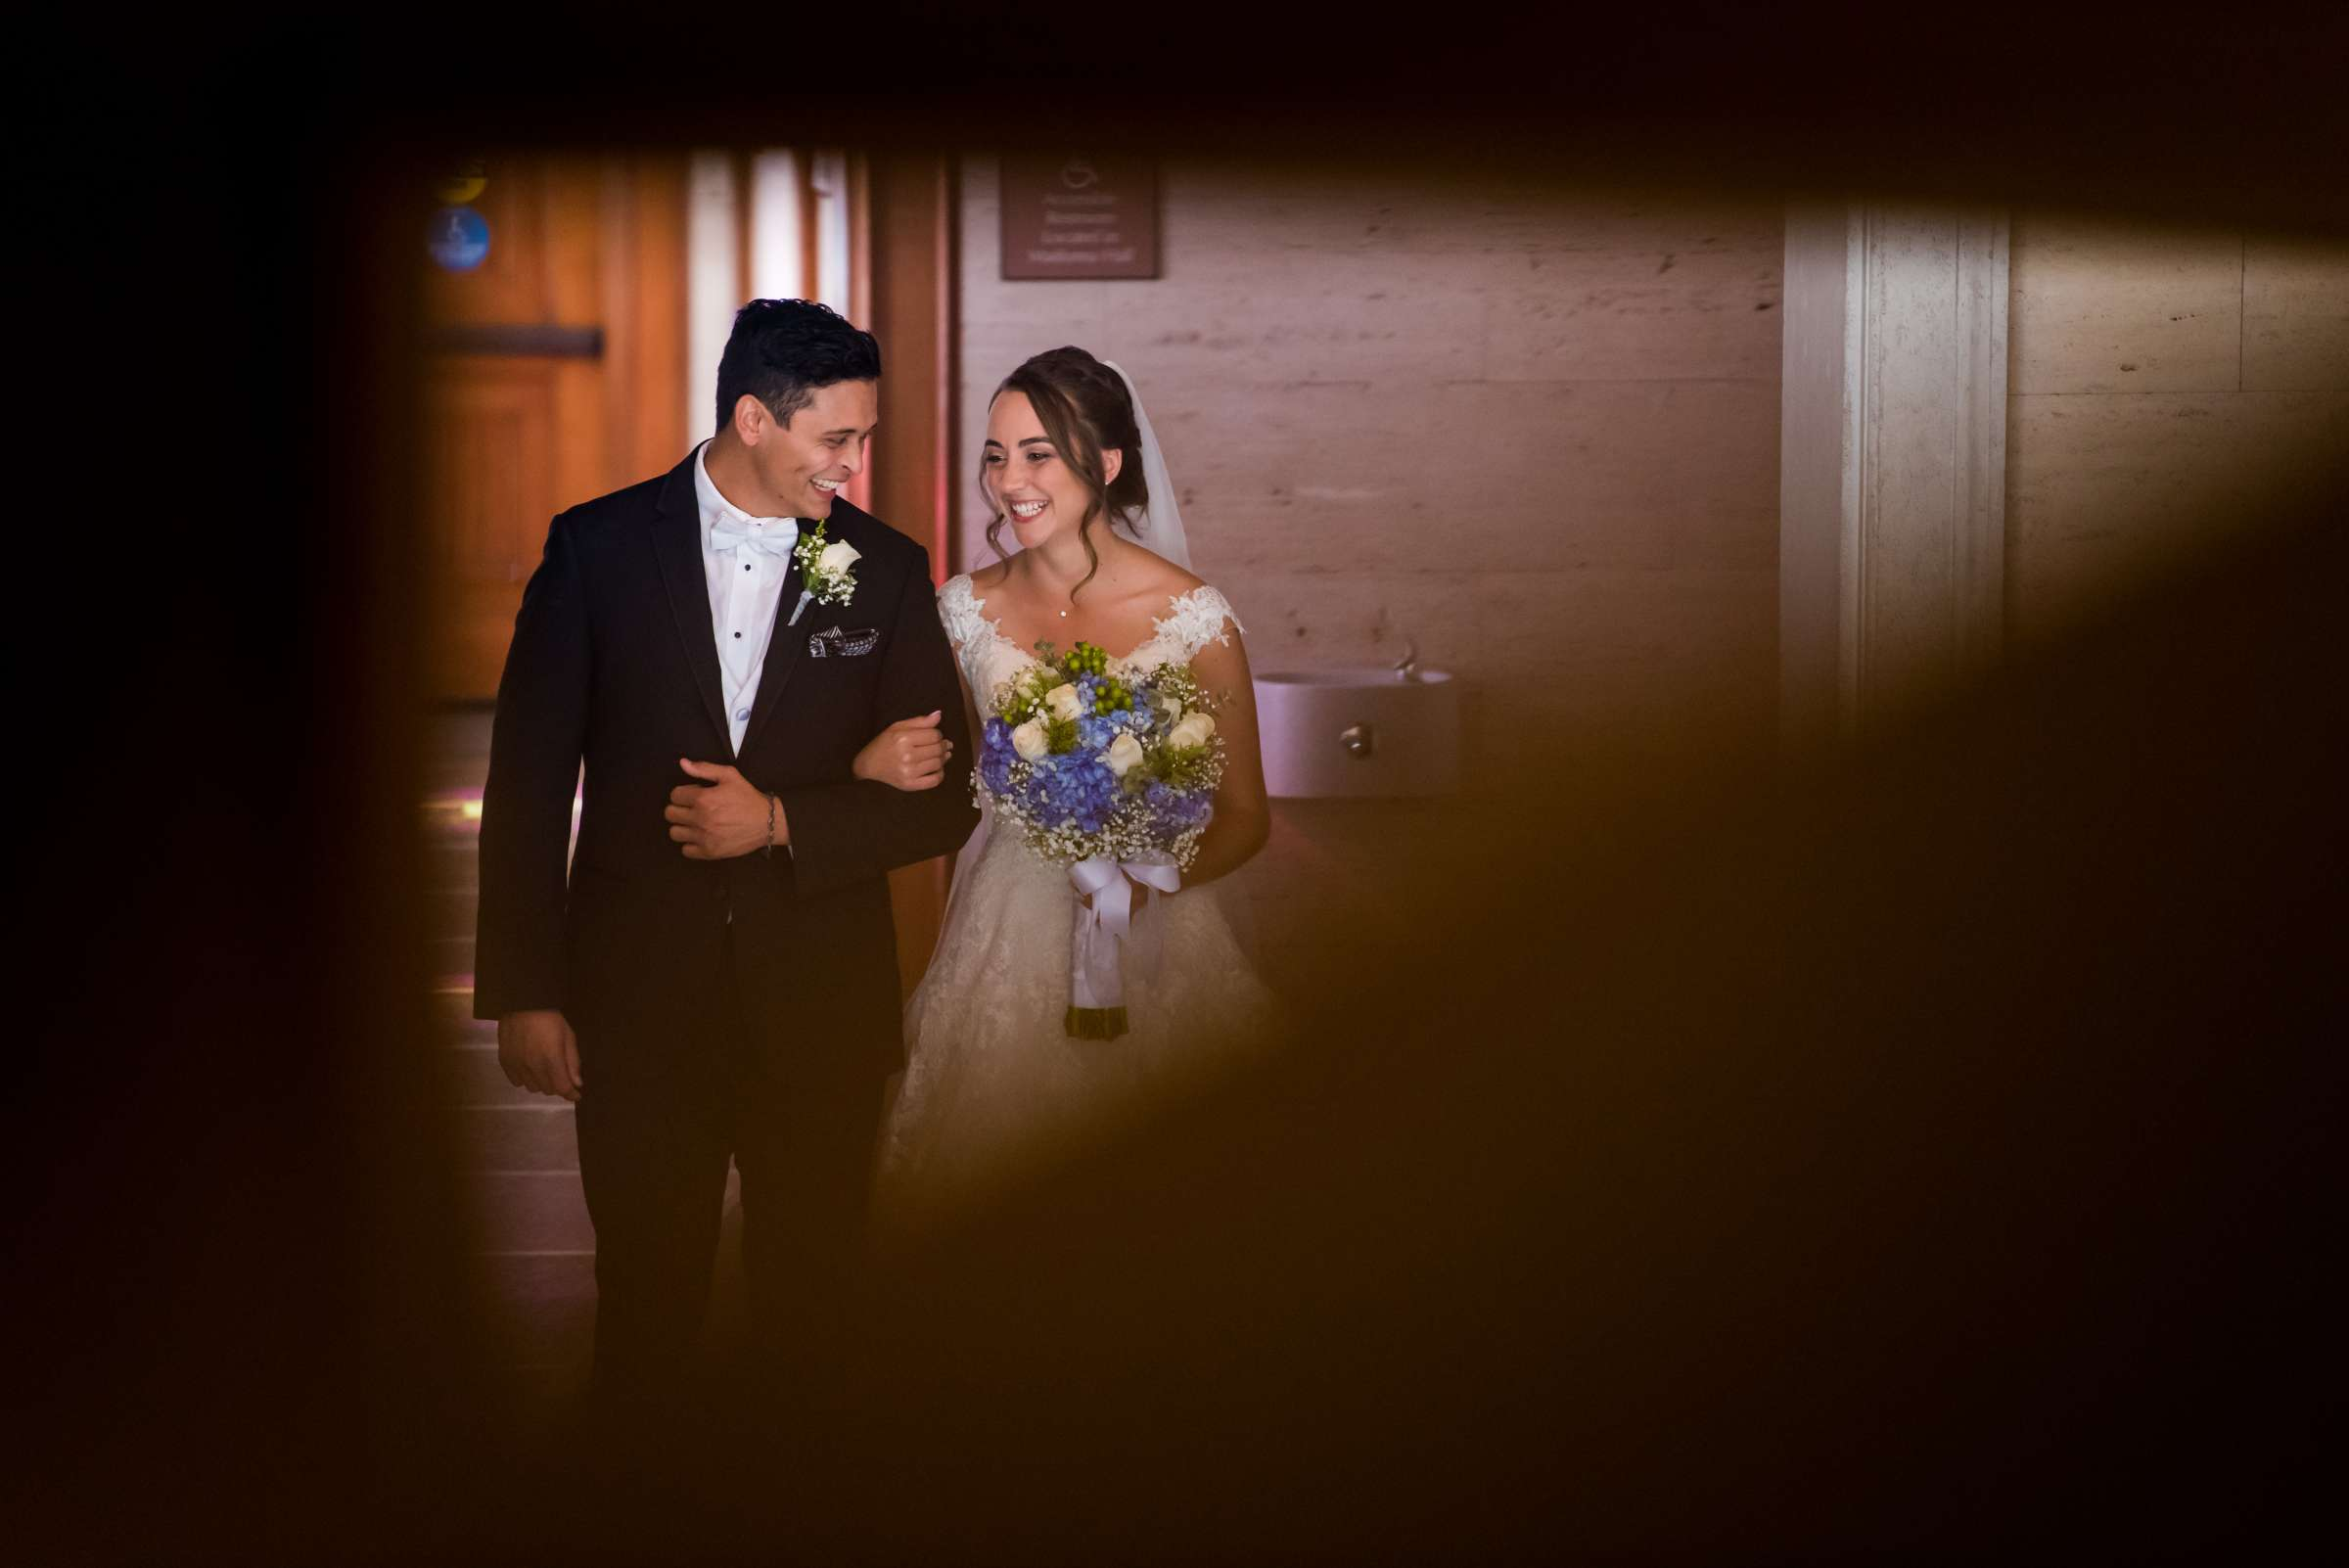 The Immaculata Wedding, Arianna and Jonah Wedding Photo #100 by True Photography